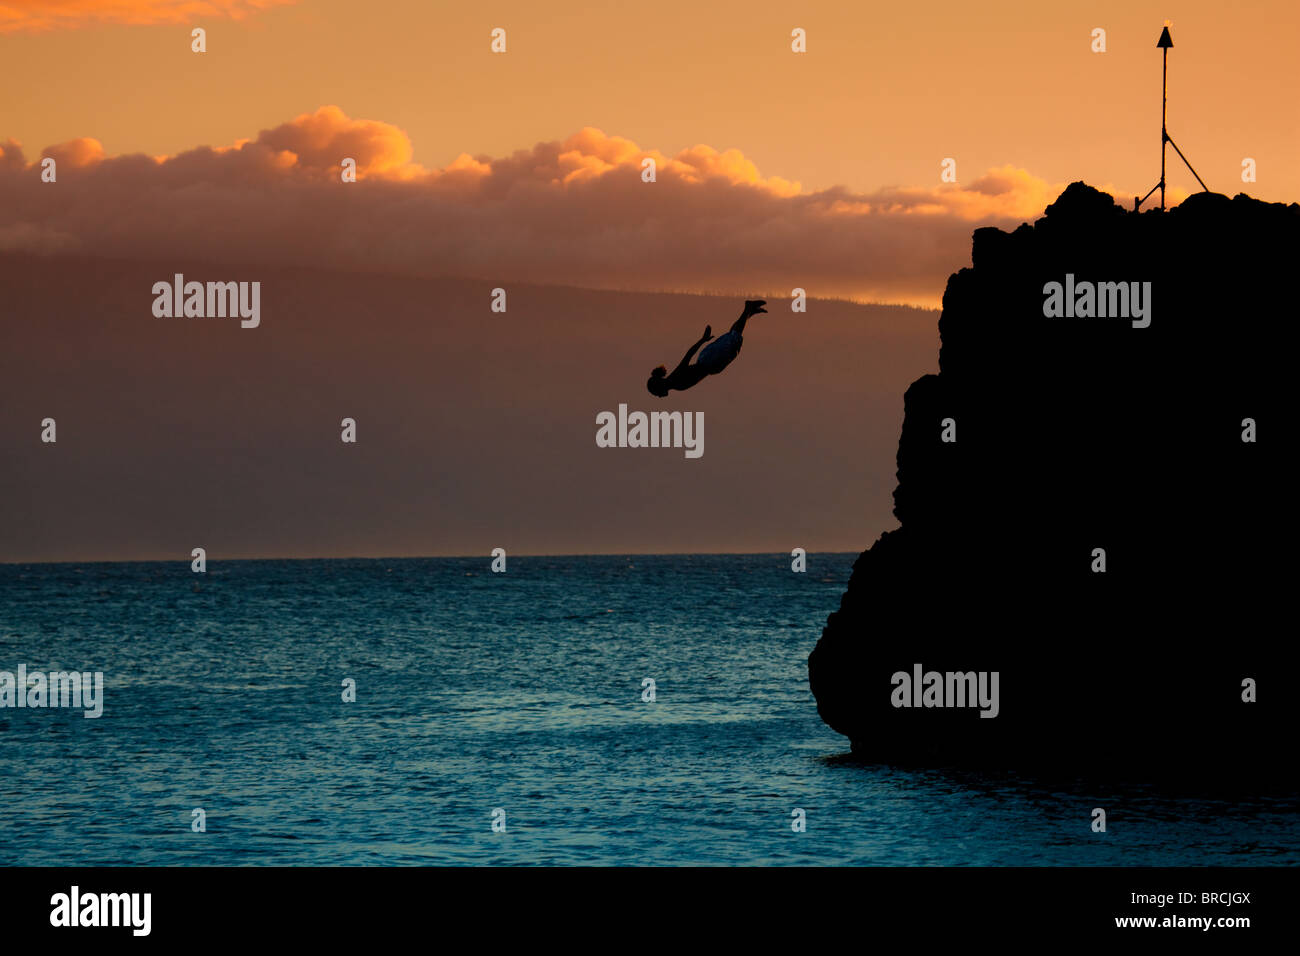 Cliff diver at sunset, Hawaii - Stock Image